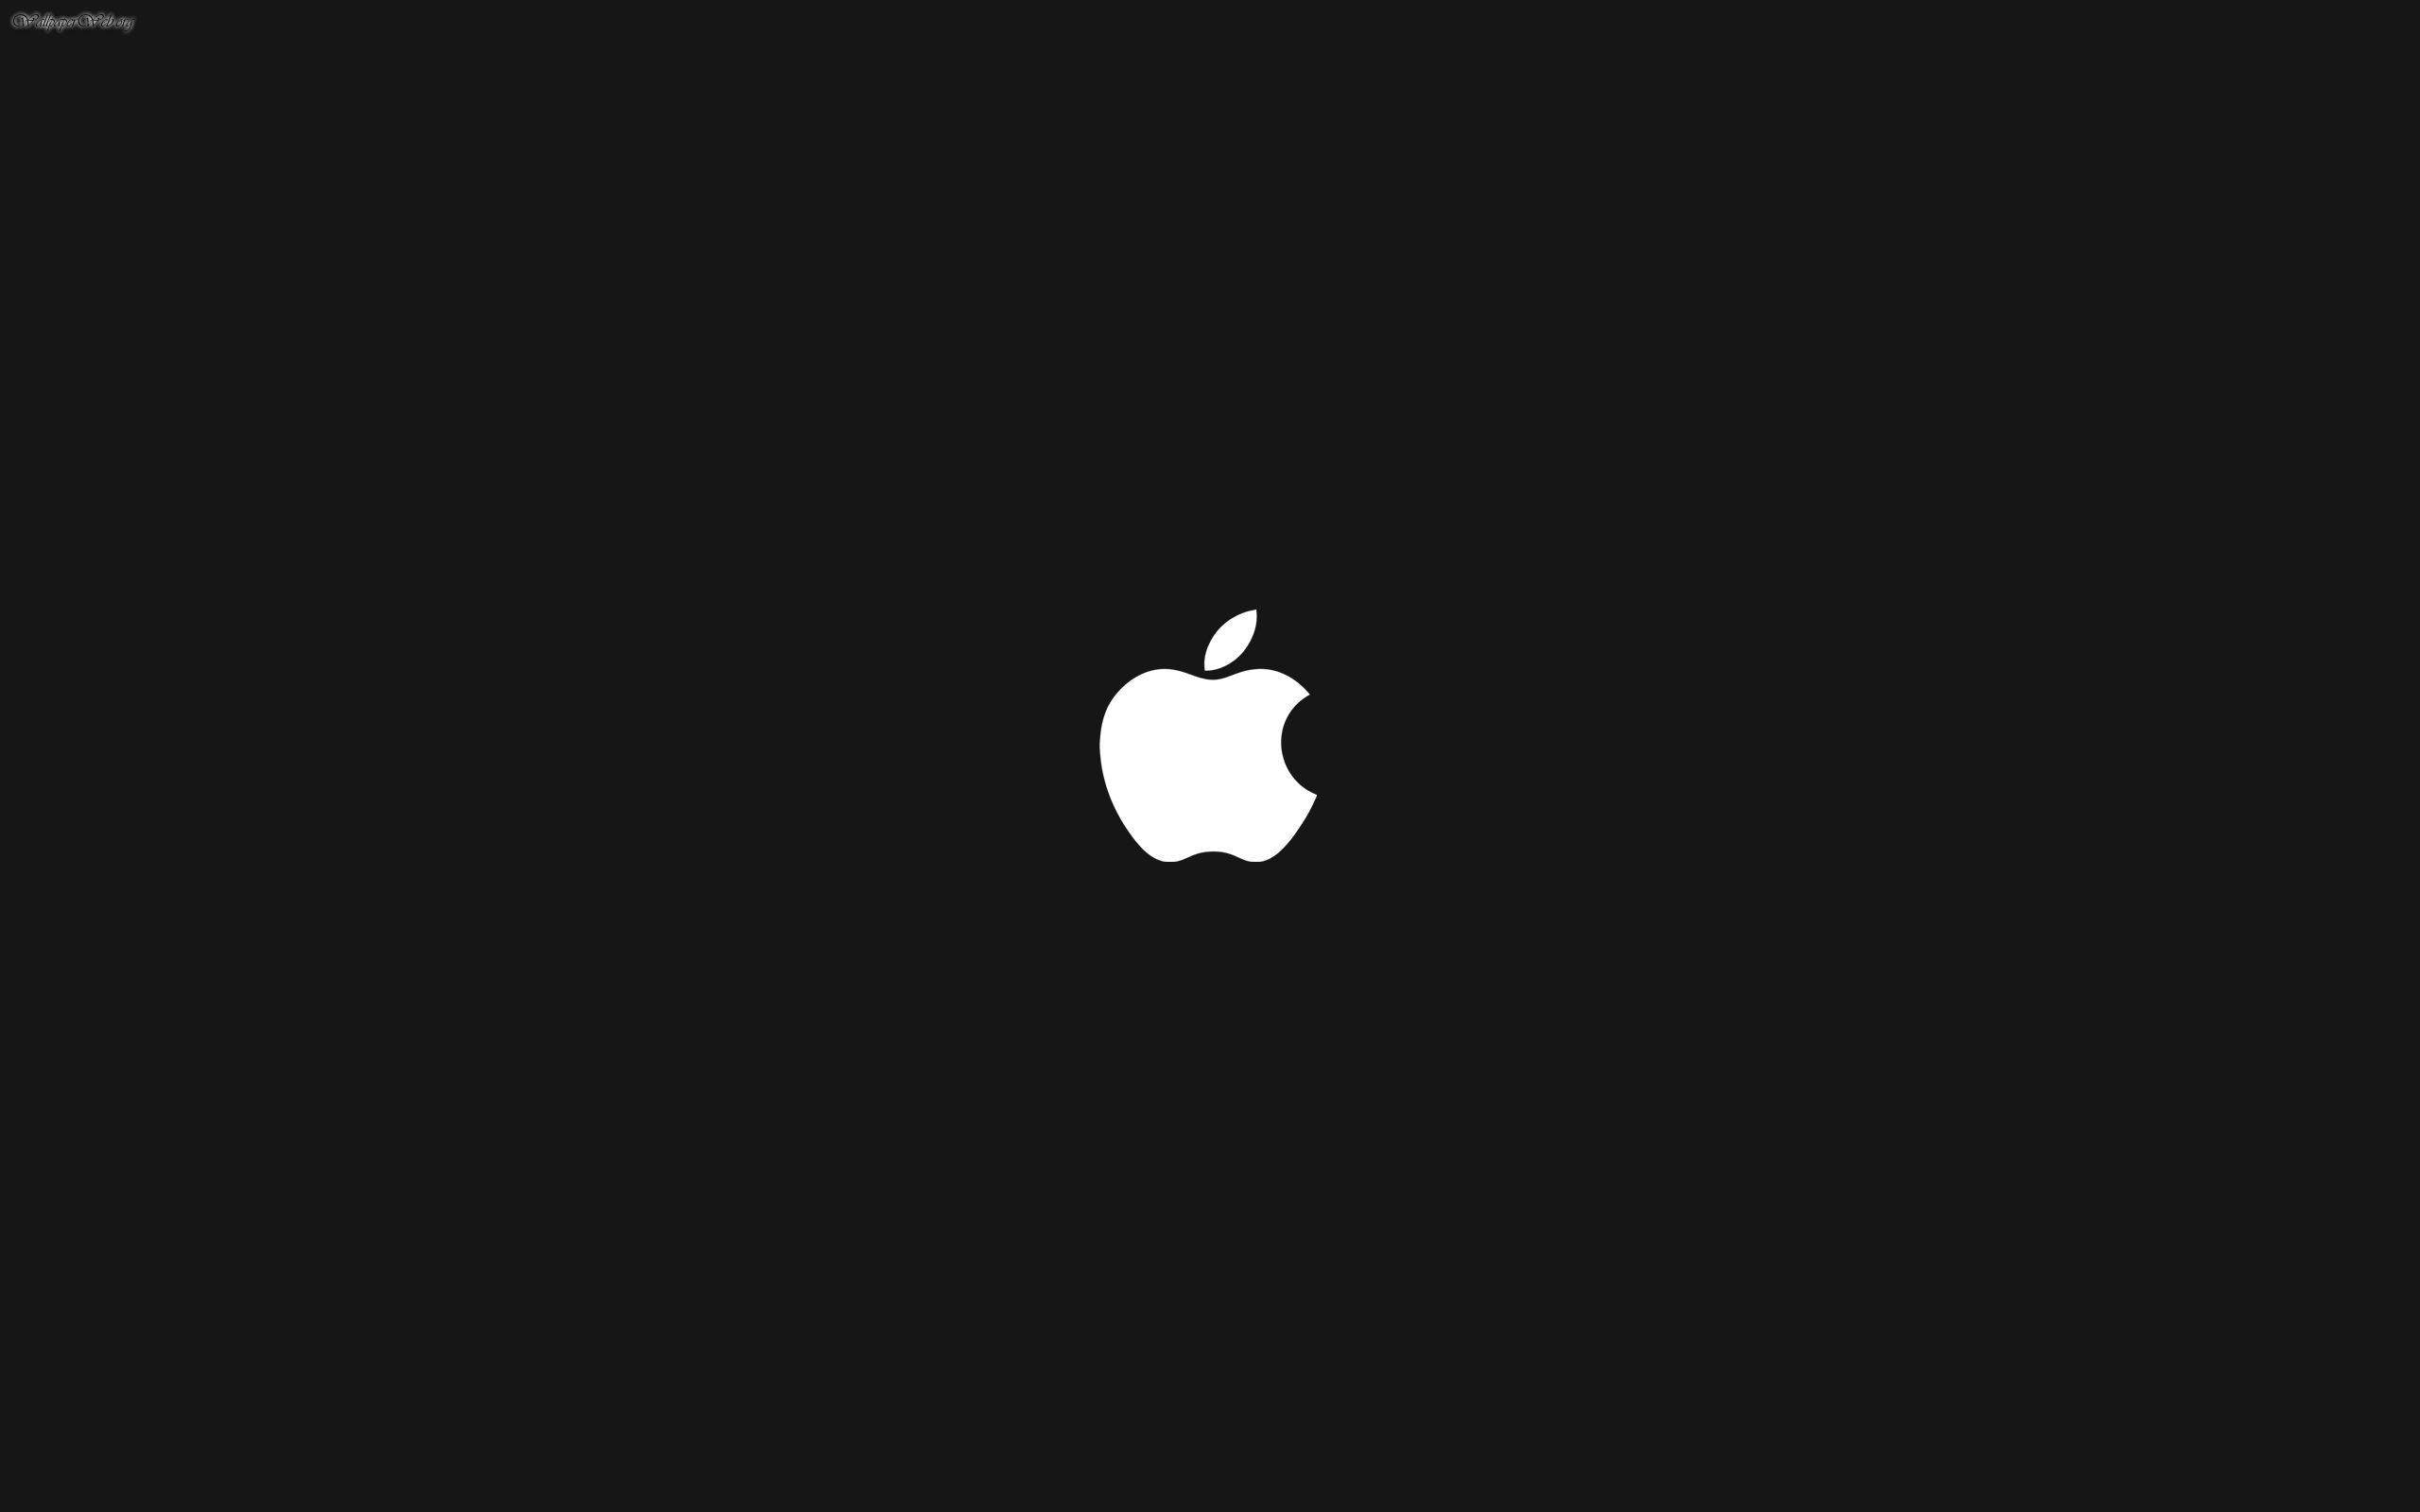 White Apple Logo HD 2560x1600